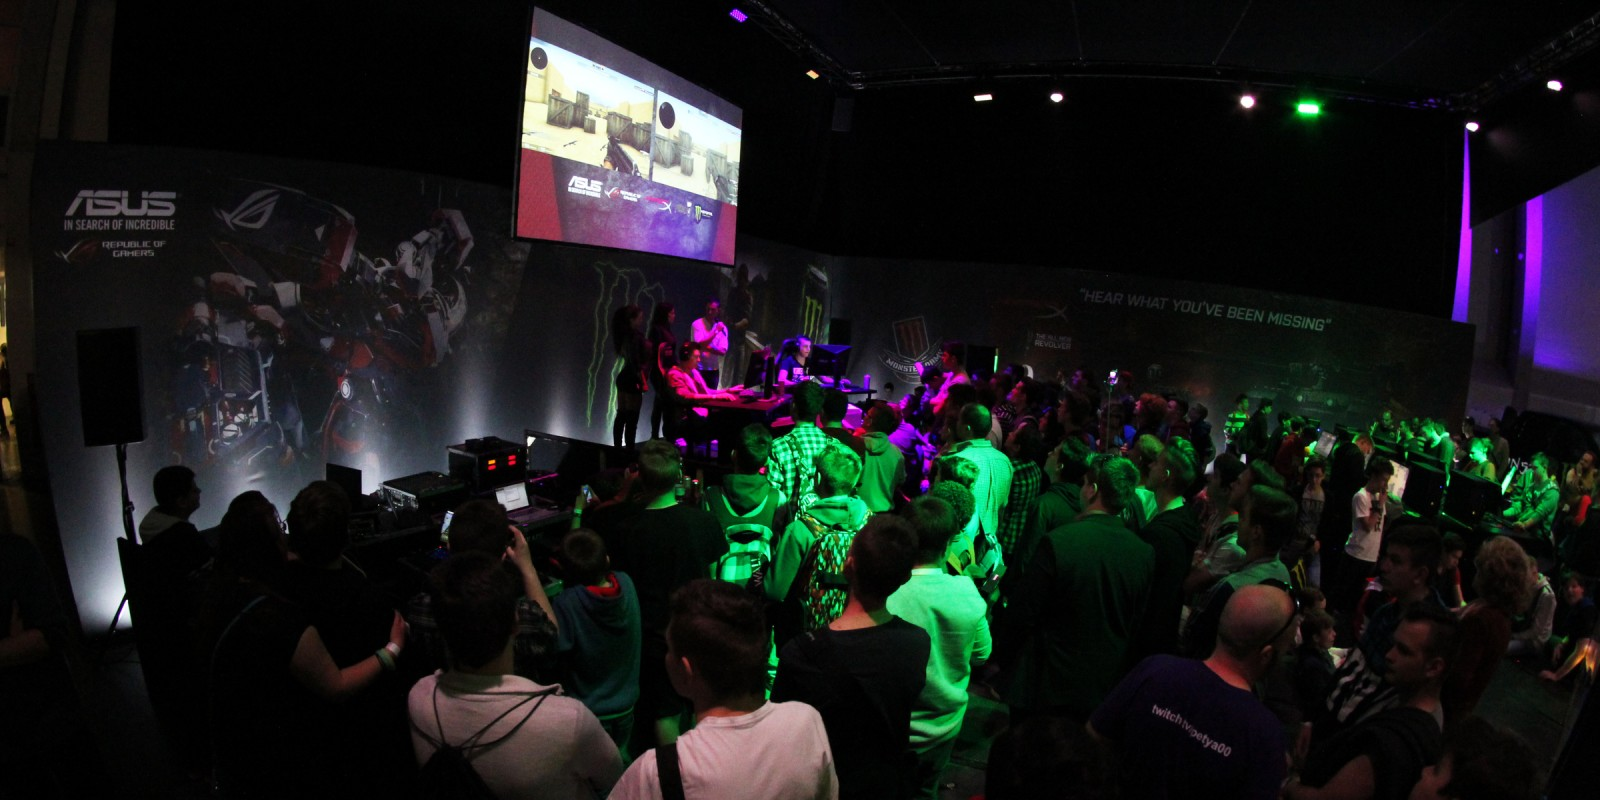 Pro Gaming 2016 - PlayIT event at Budapest, Hungary - Monster lounge